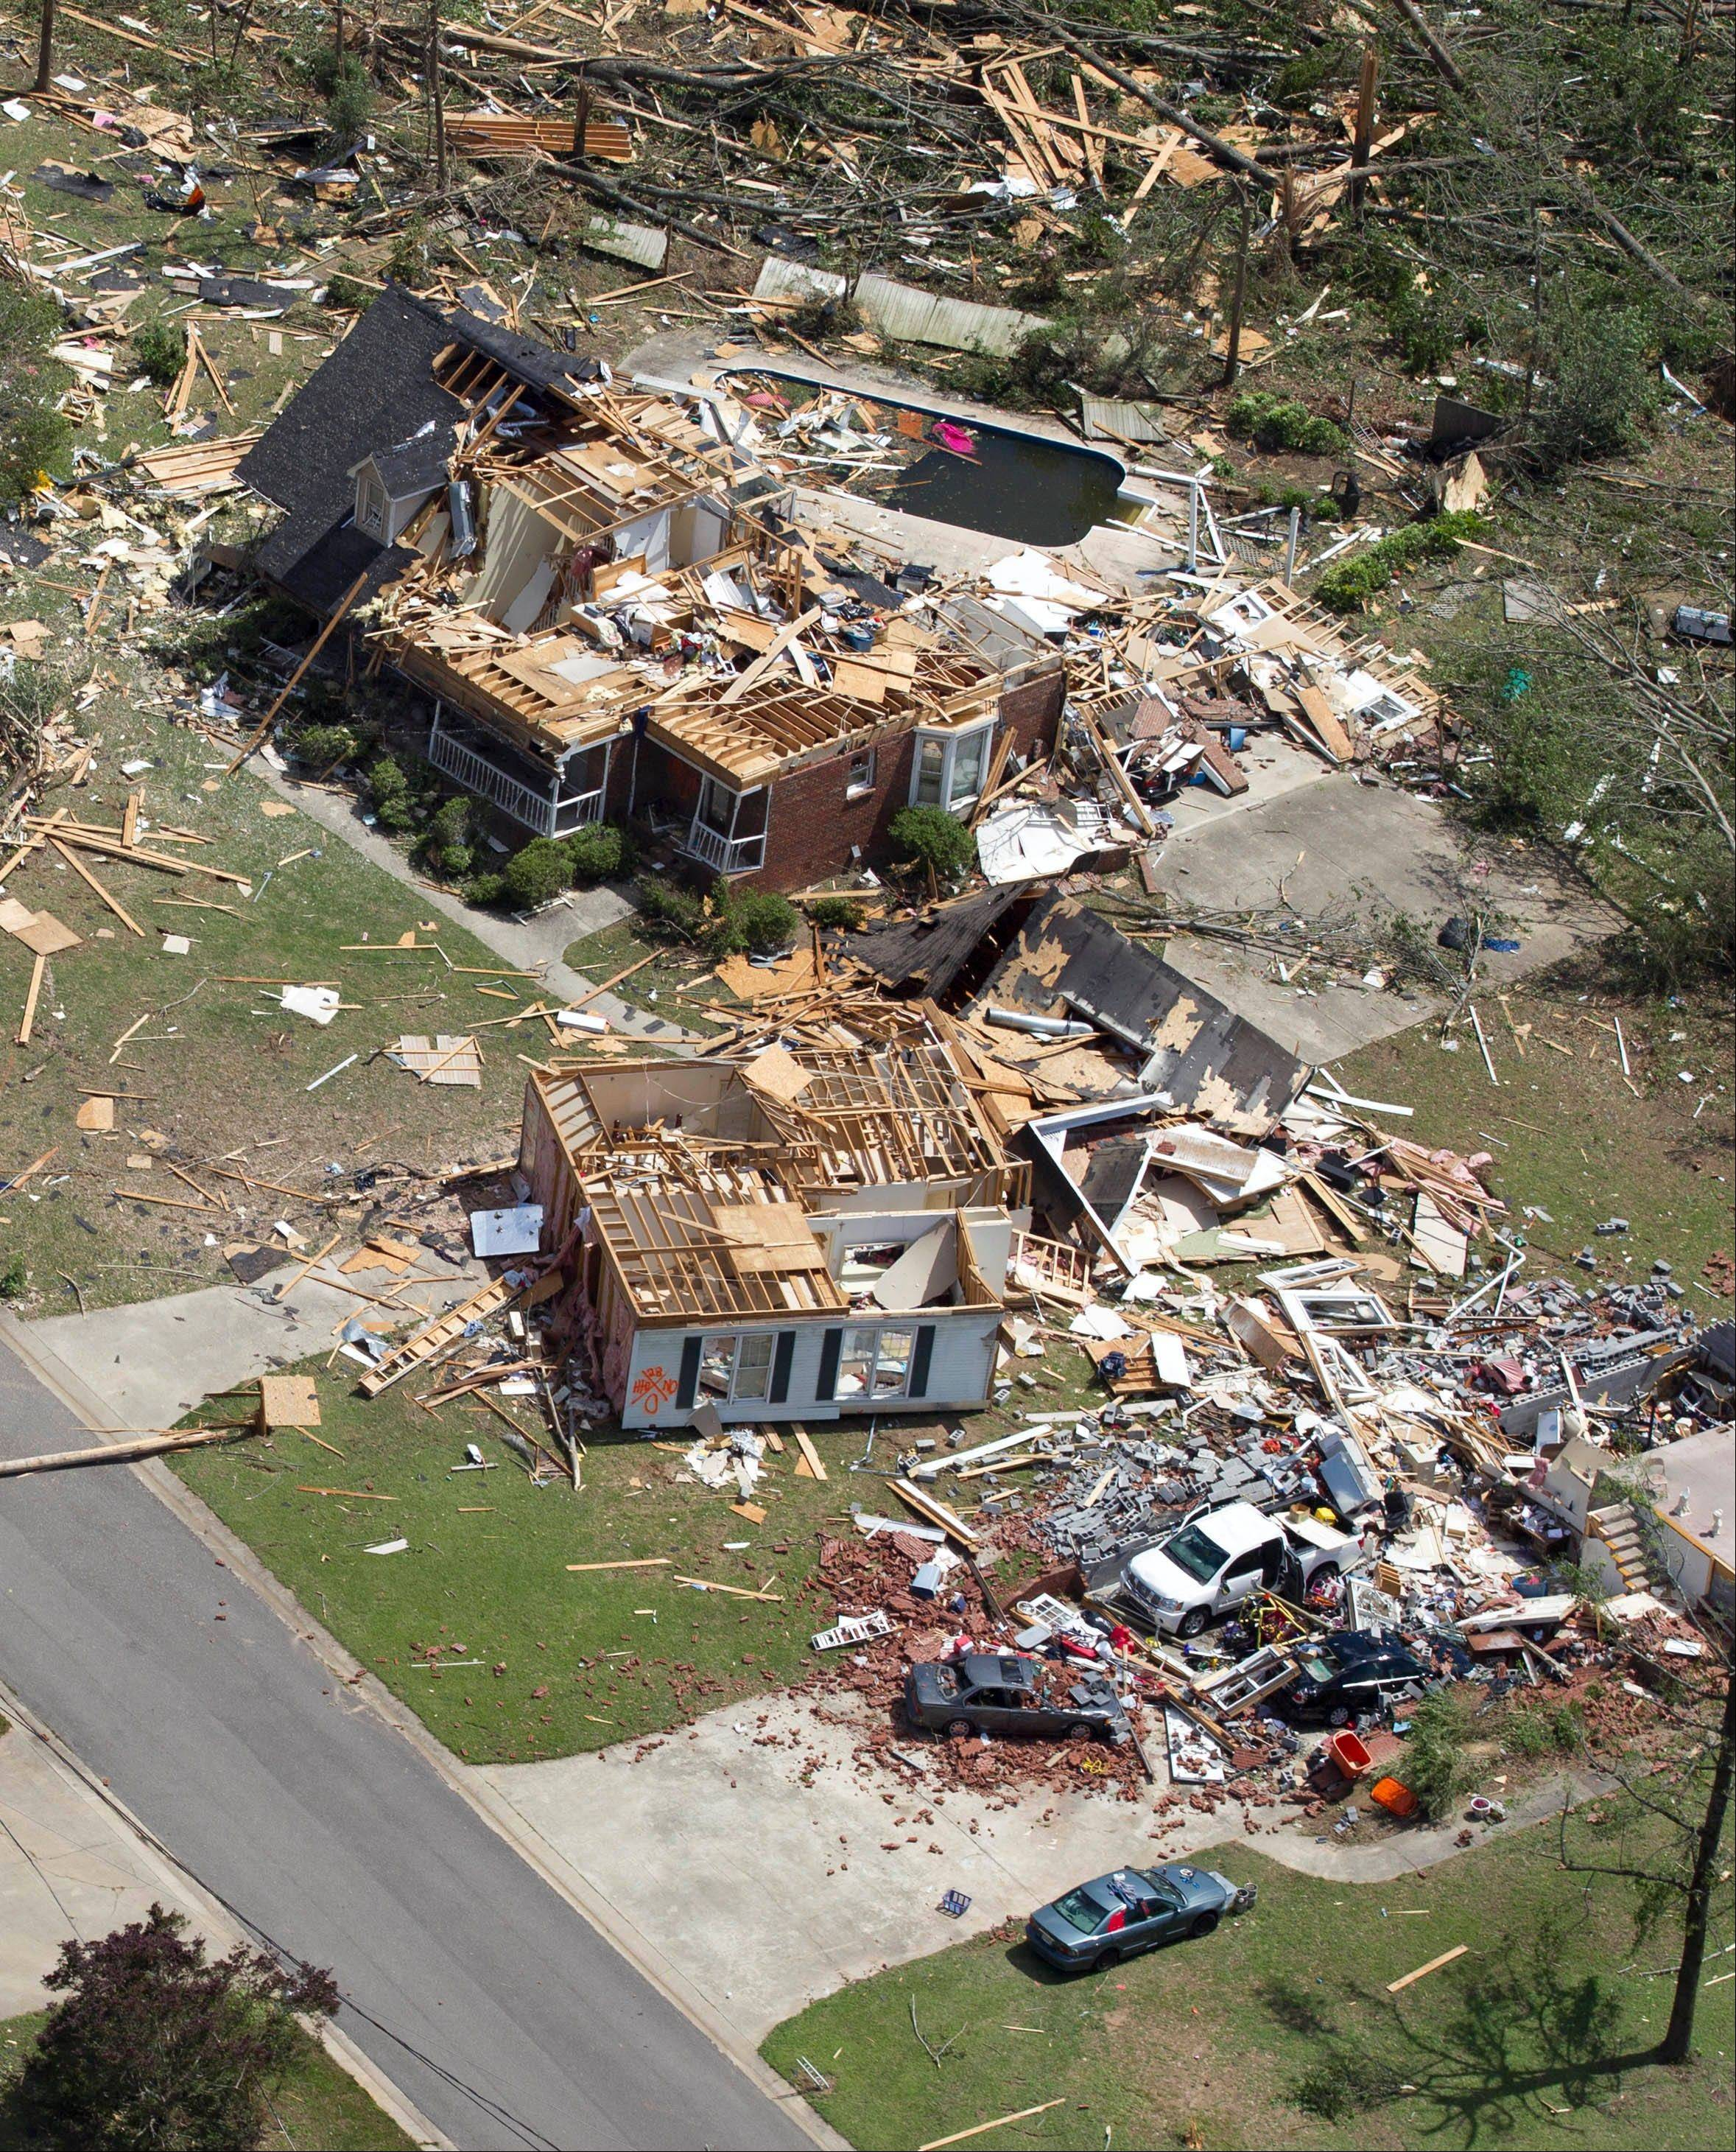 This aerial photo taken April 28, 2011, shows tornado damage in Pleasant Grove, Ala. The photos and mementoes that were blown for hundreds of miles during the tornado outbreak two years ago are giving researchers new insight on how debris is carried. University of Georgia associate professor John Knox says a new study has documented how one photo traveled nearly 220 miles through the atmosphere over Alabama and Tennessee.